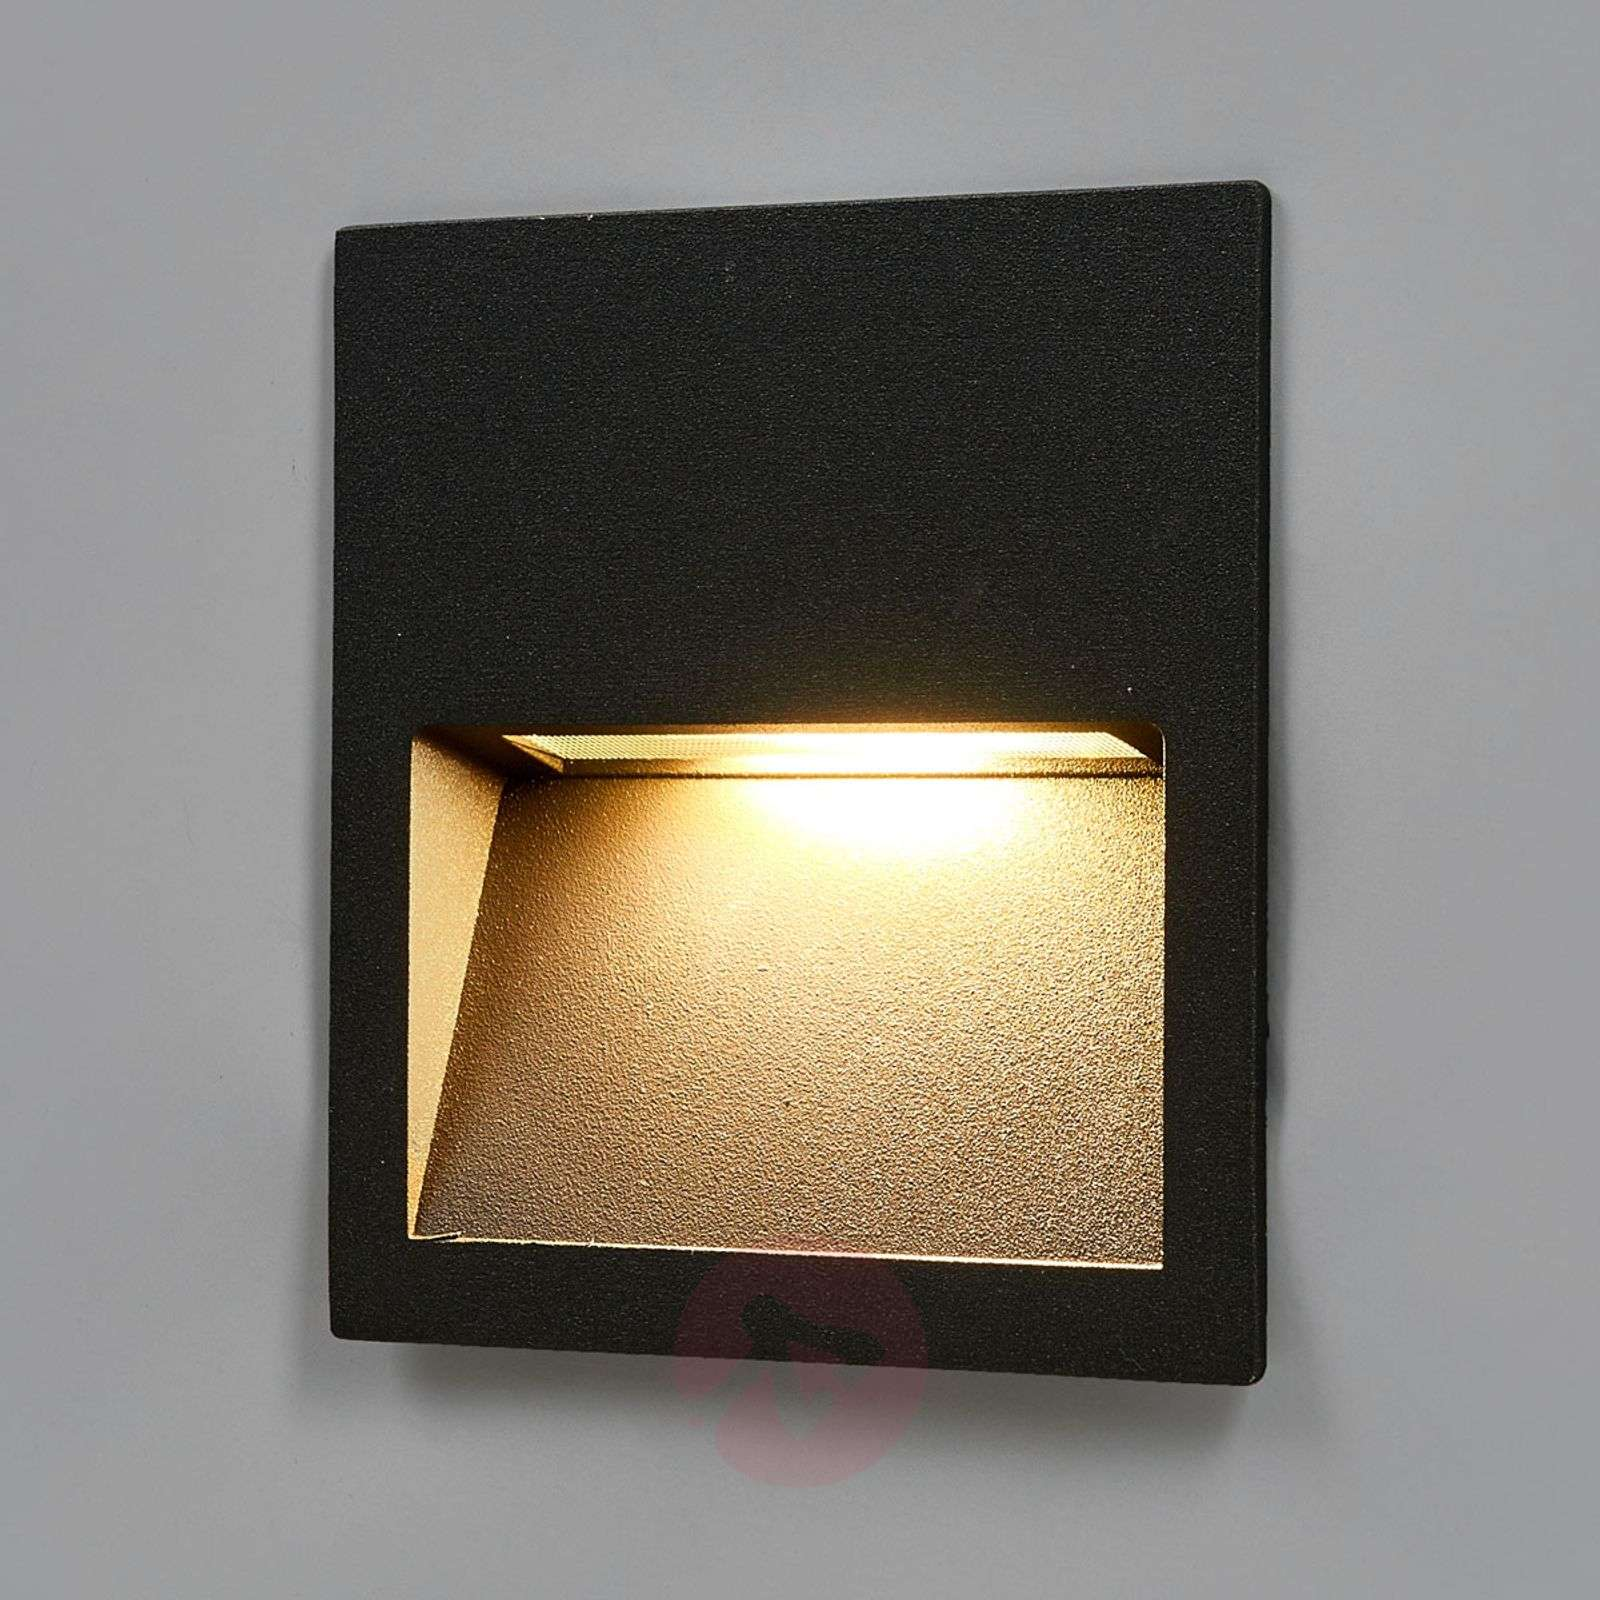 Recessed Wall Lighting: Square LED Recessed Wall Light Loya For Outdoors